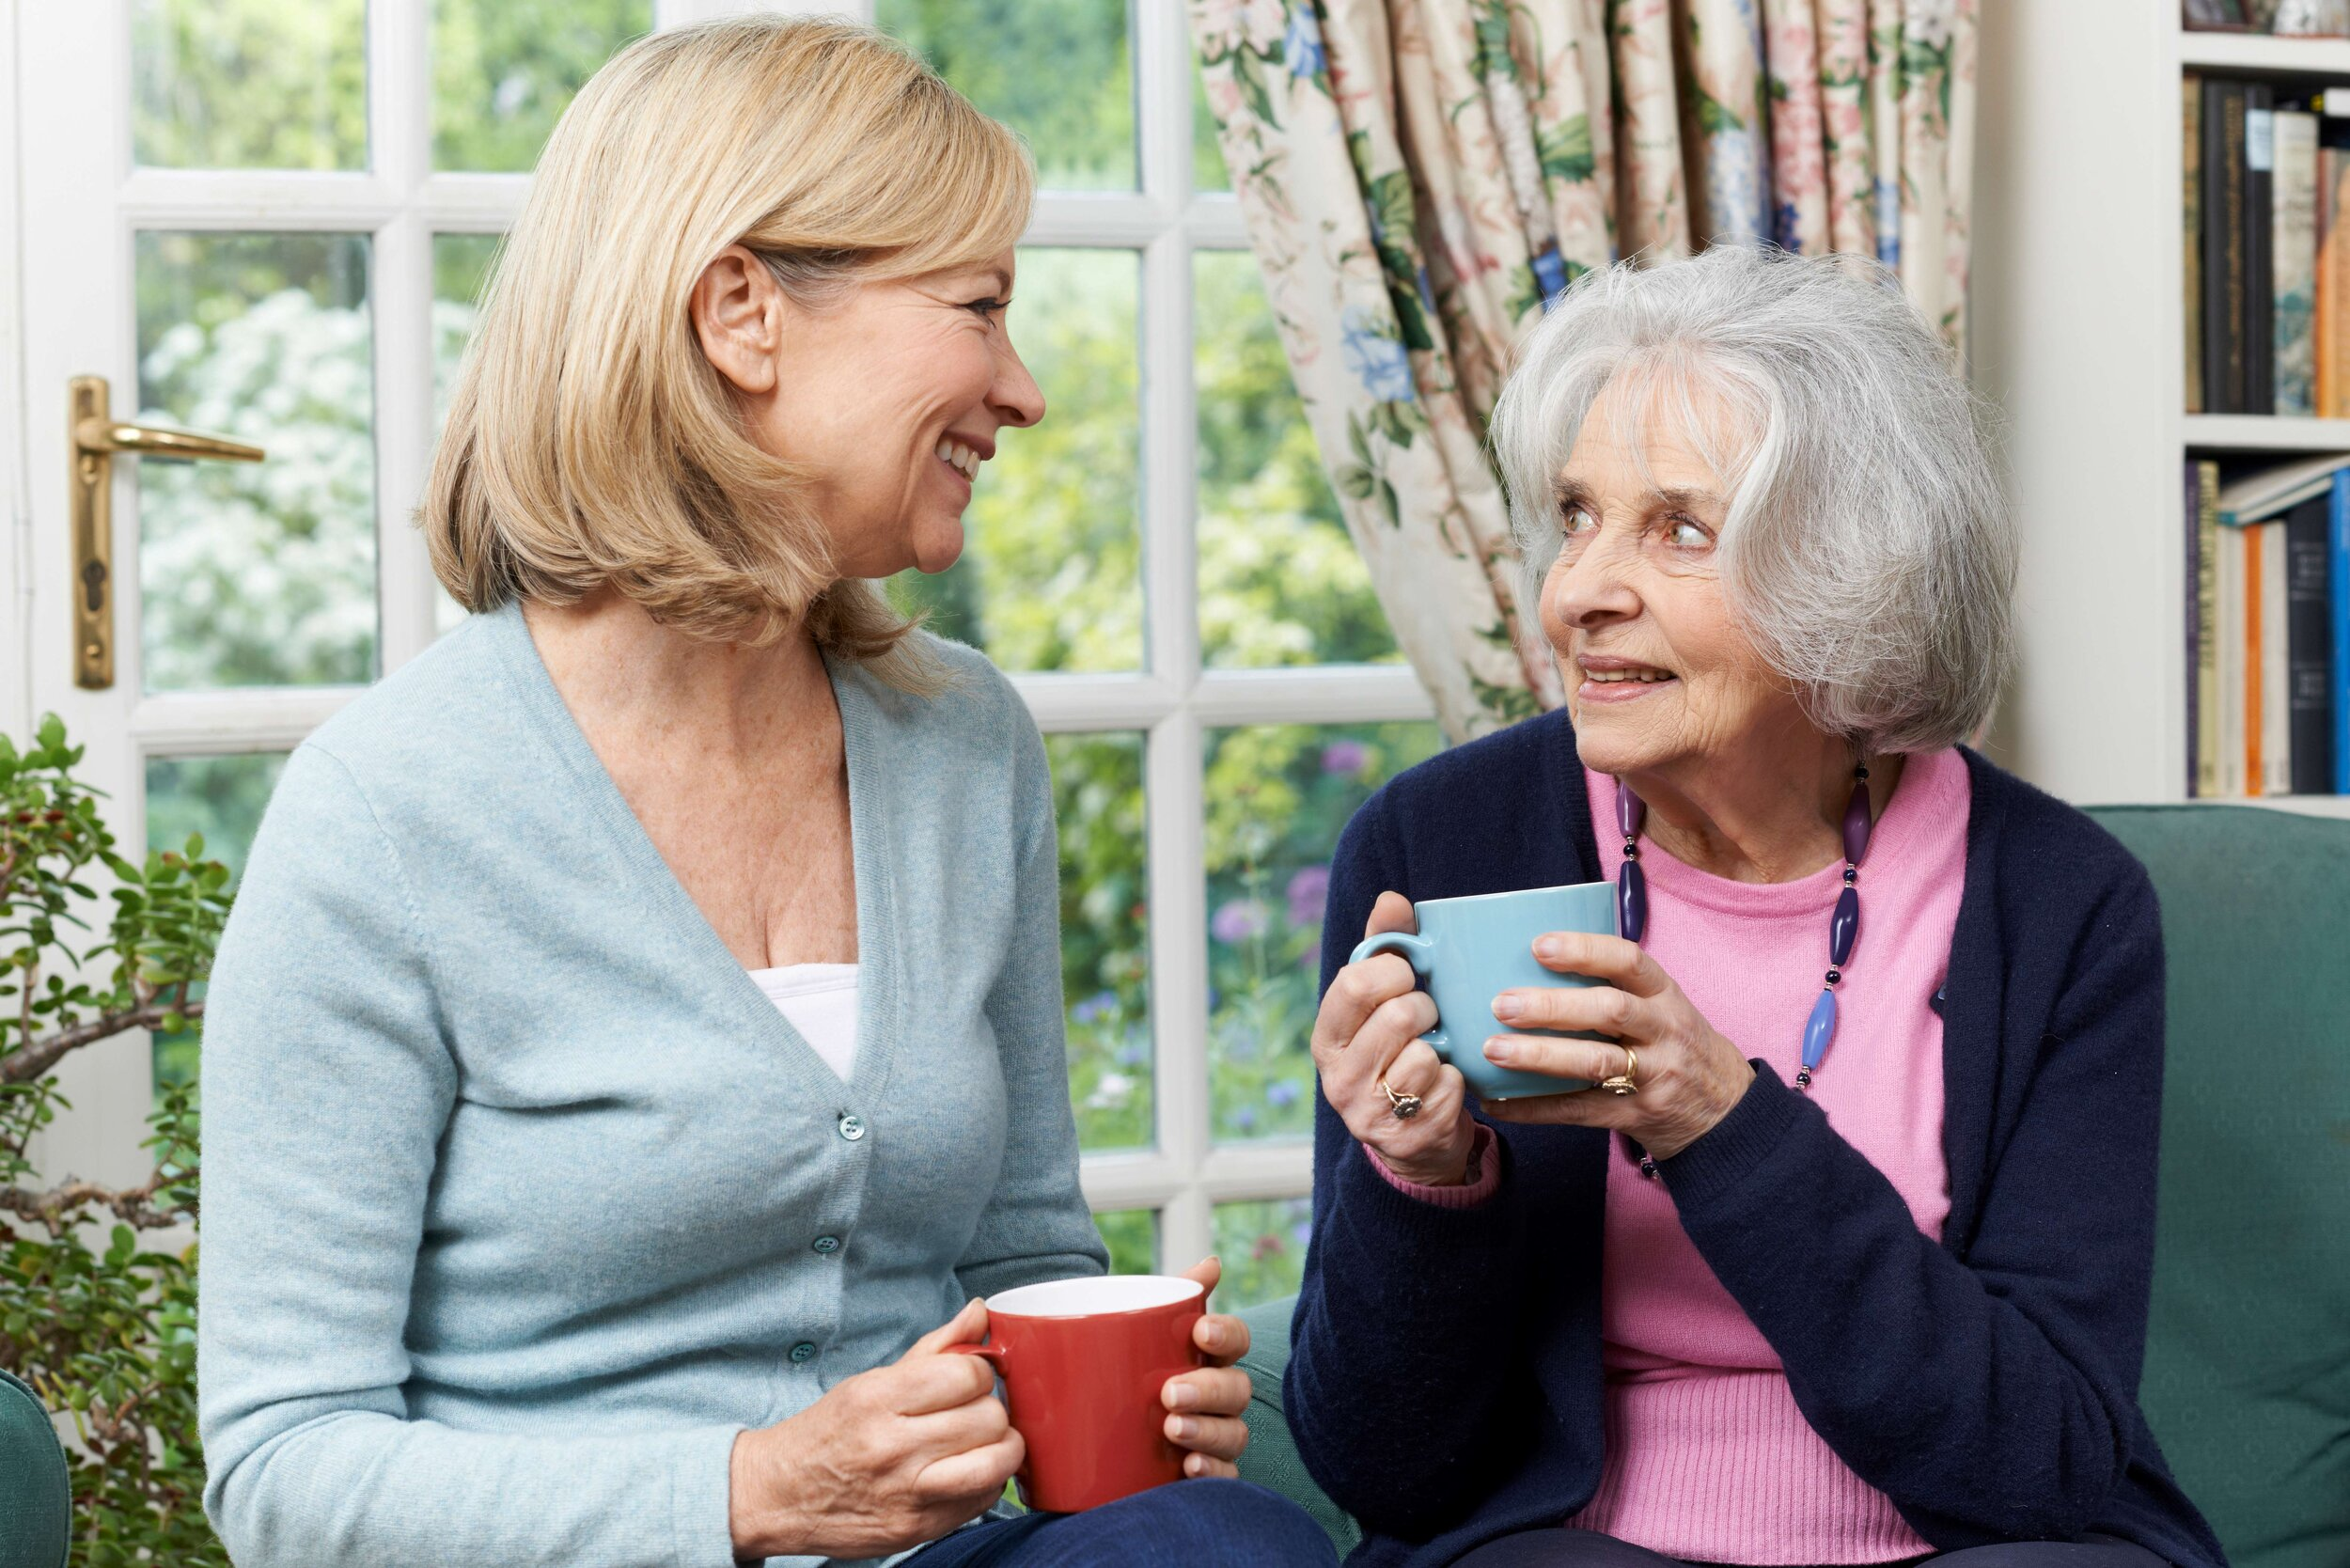 Canva - Woman Taking Time To Visit Senior Female Neighbor And Talk SMALLER.jpg